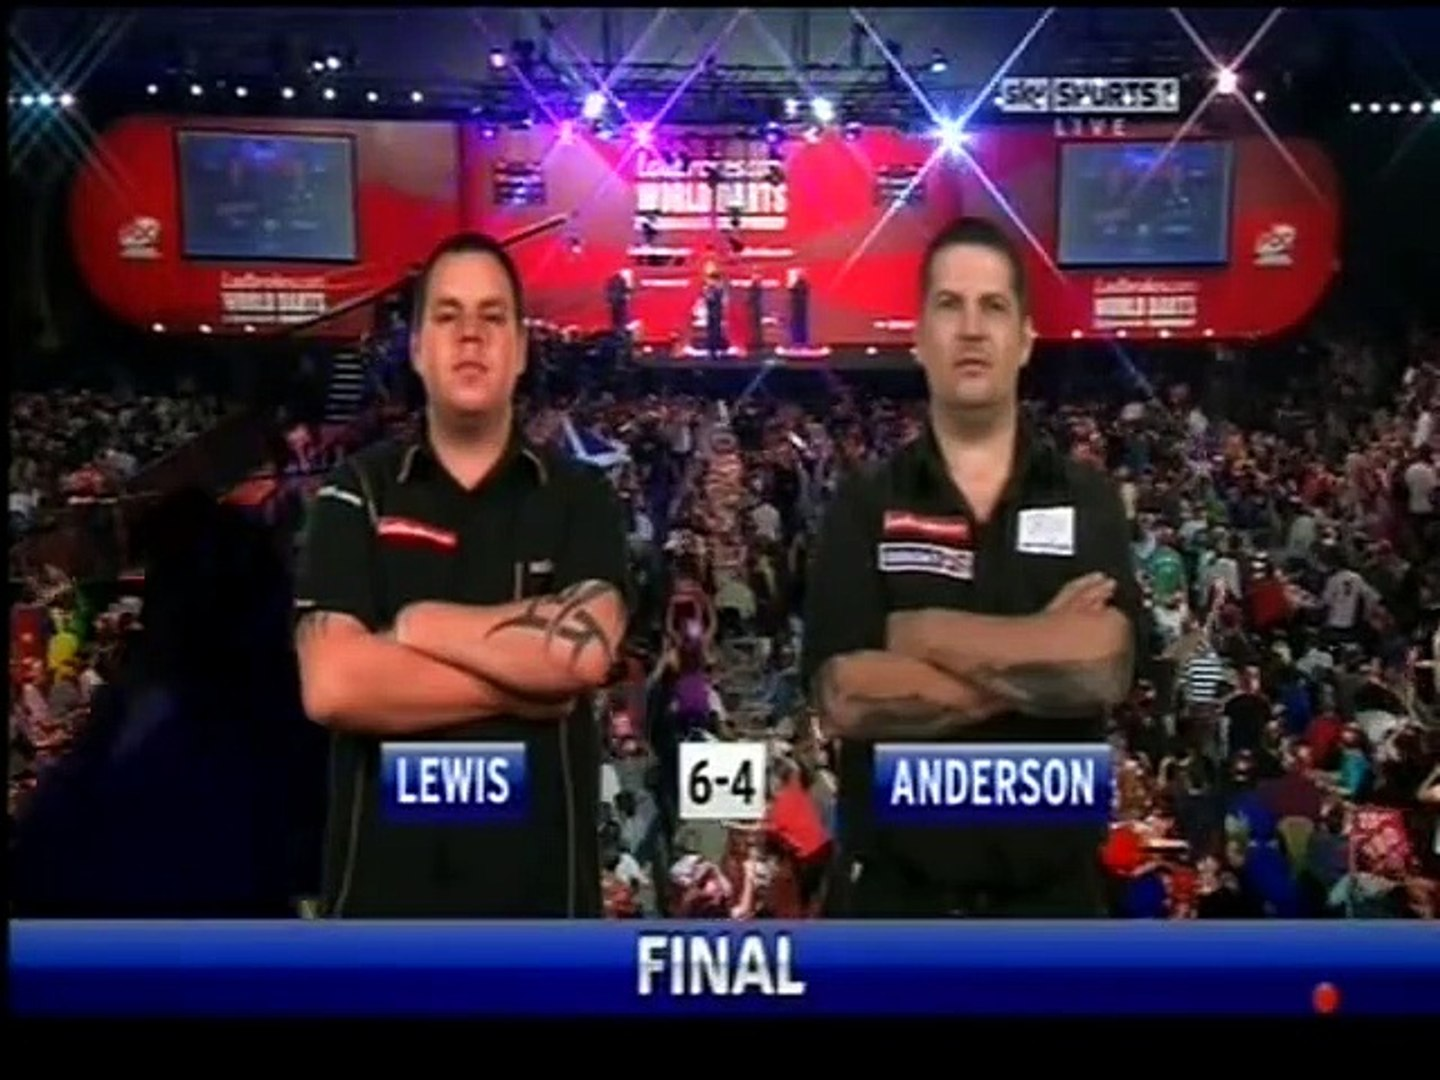 PDC World Darts Championship Final 2011 - Adrian Lewis vs Gary Anderson 2011 3of3